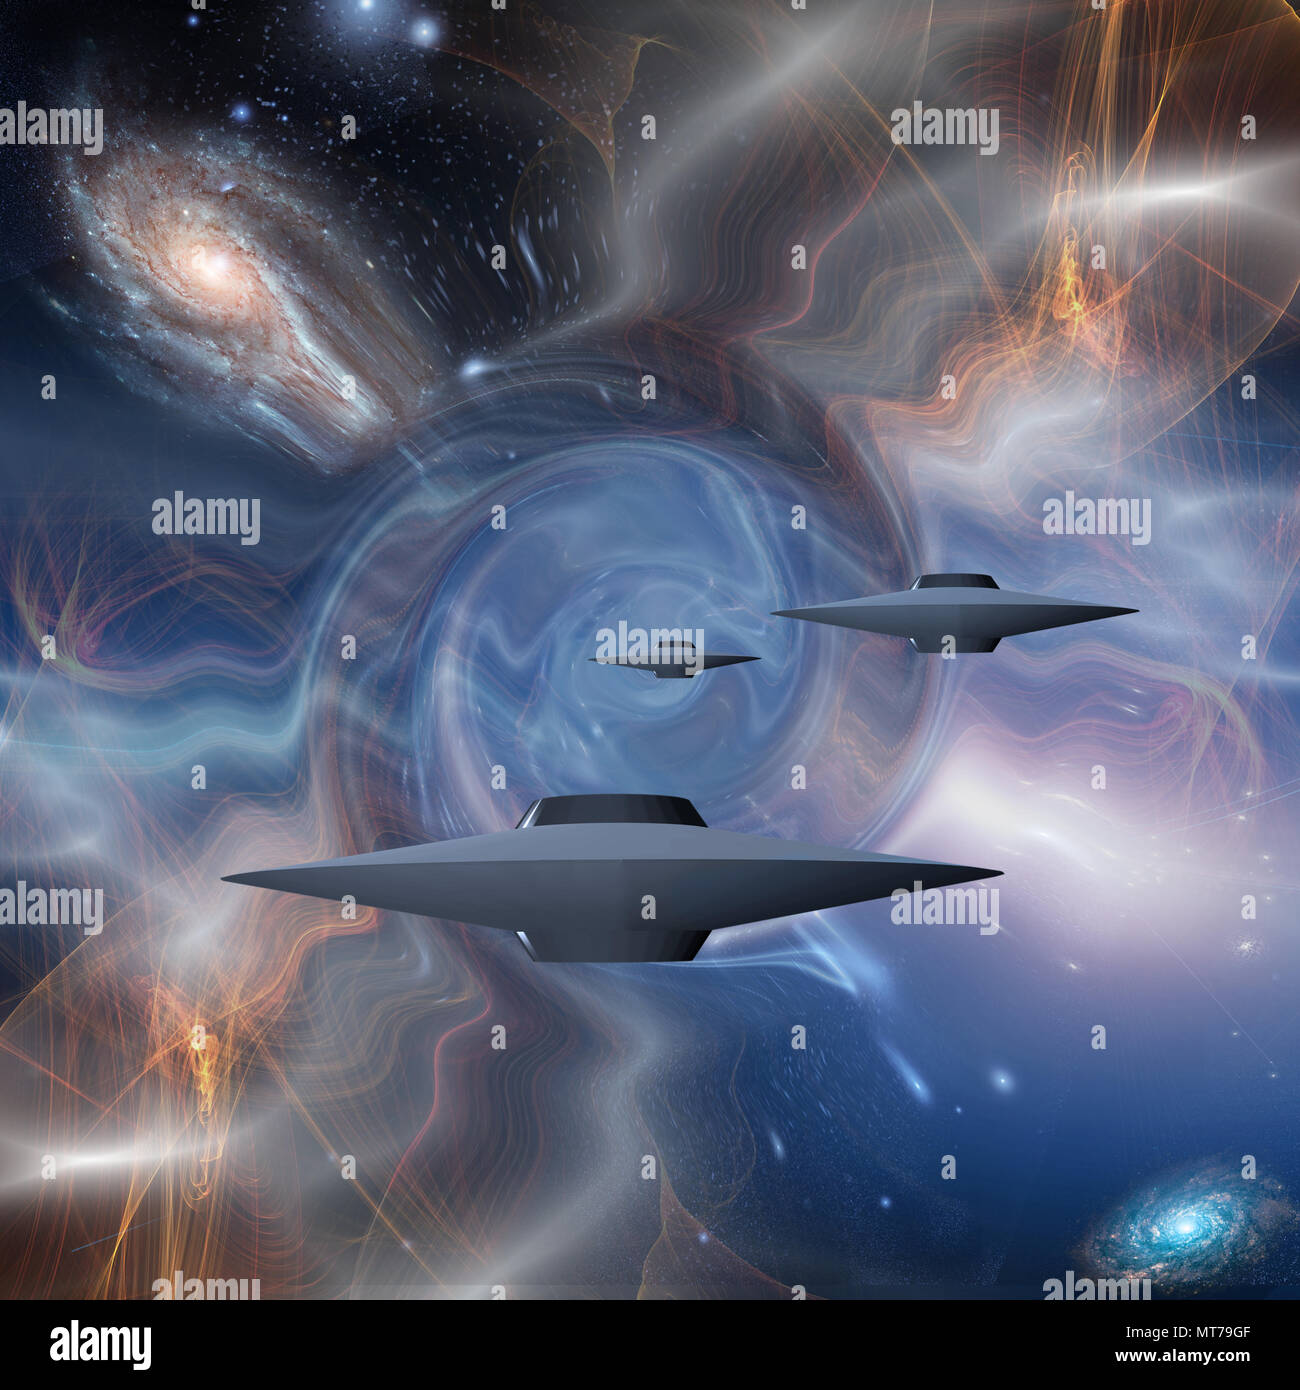 Surreal digital art. Flying saucers in warped space. - Stock Image